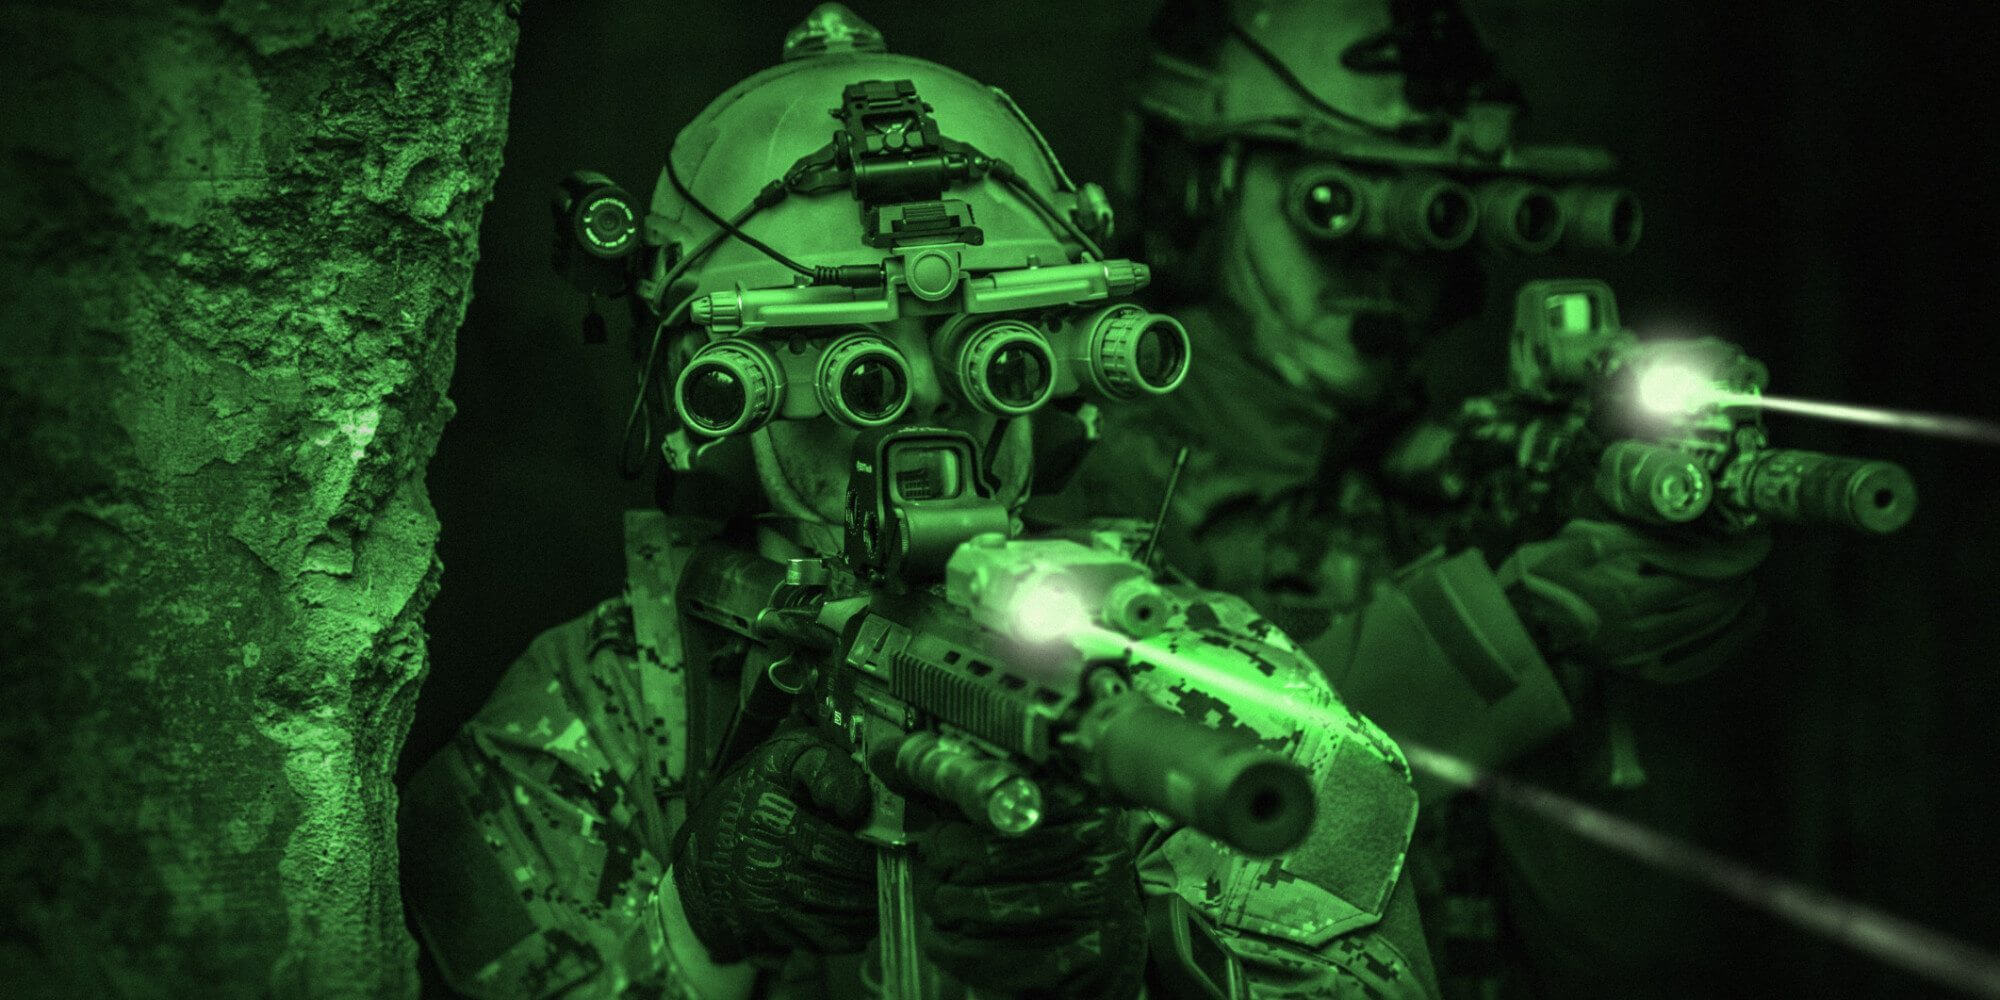 o night vision graphene